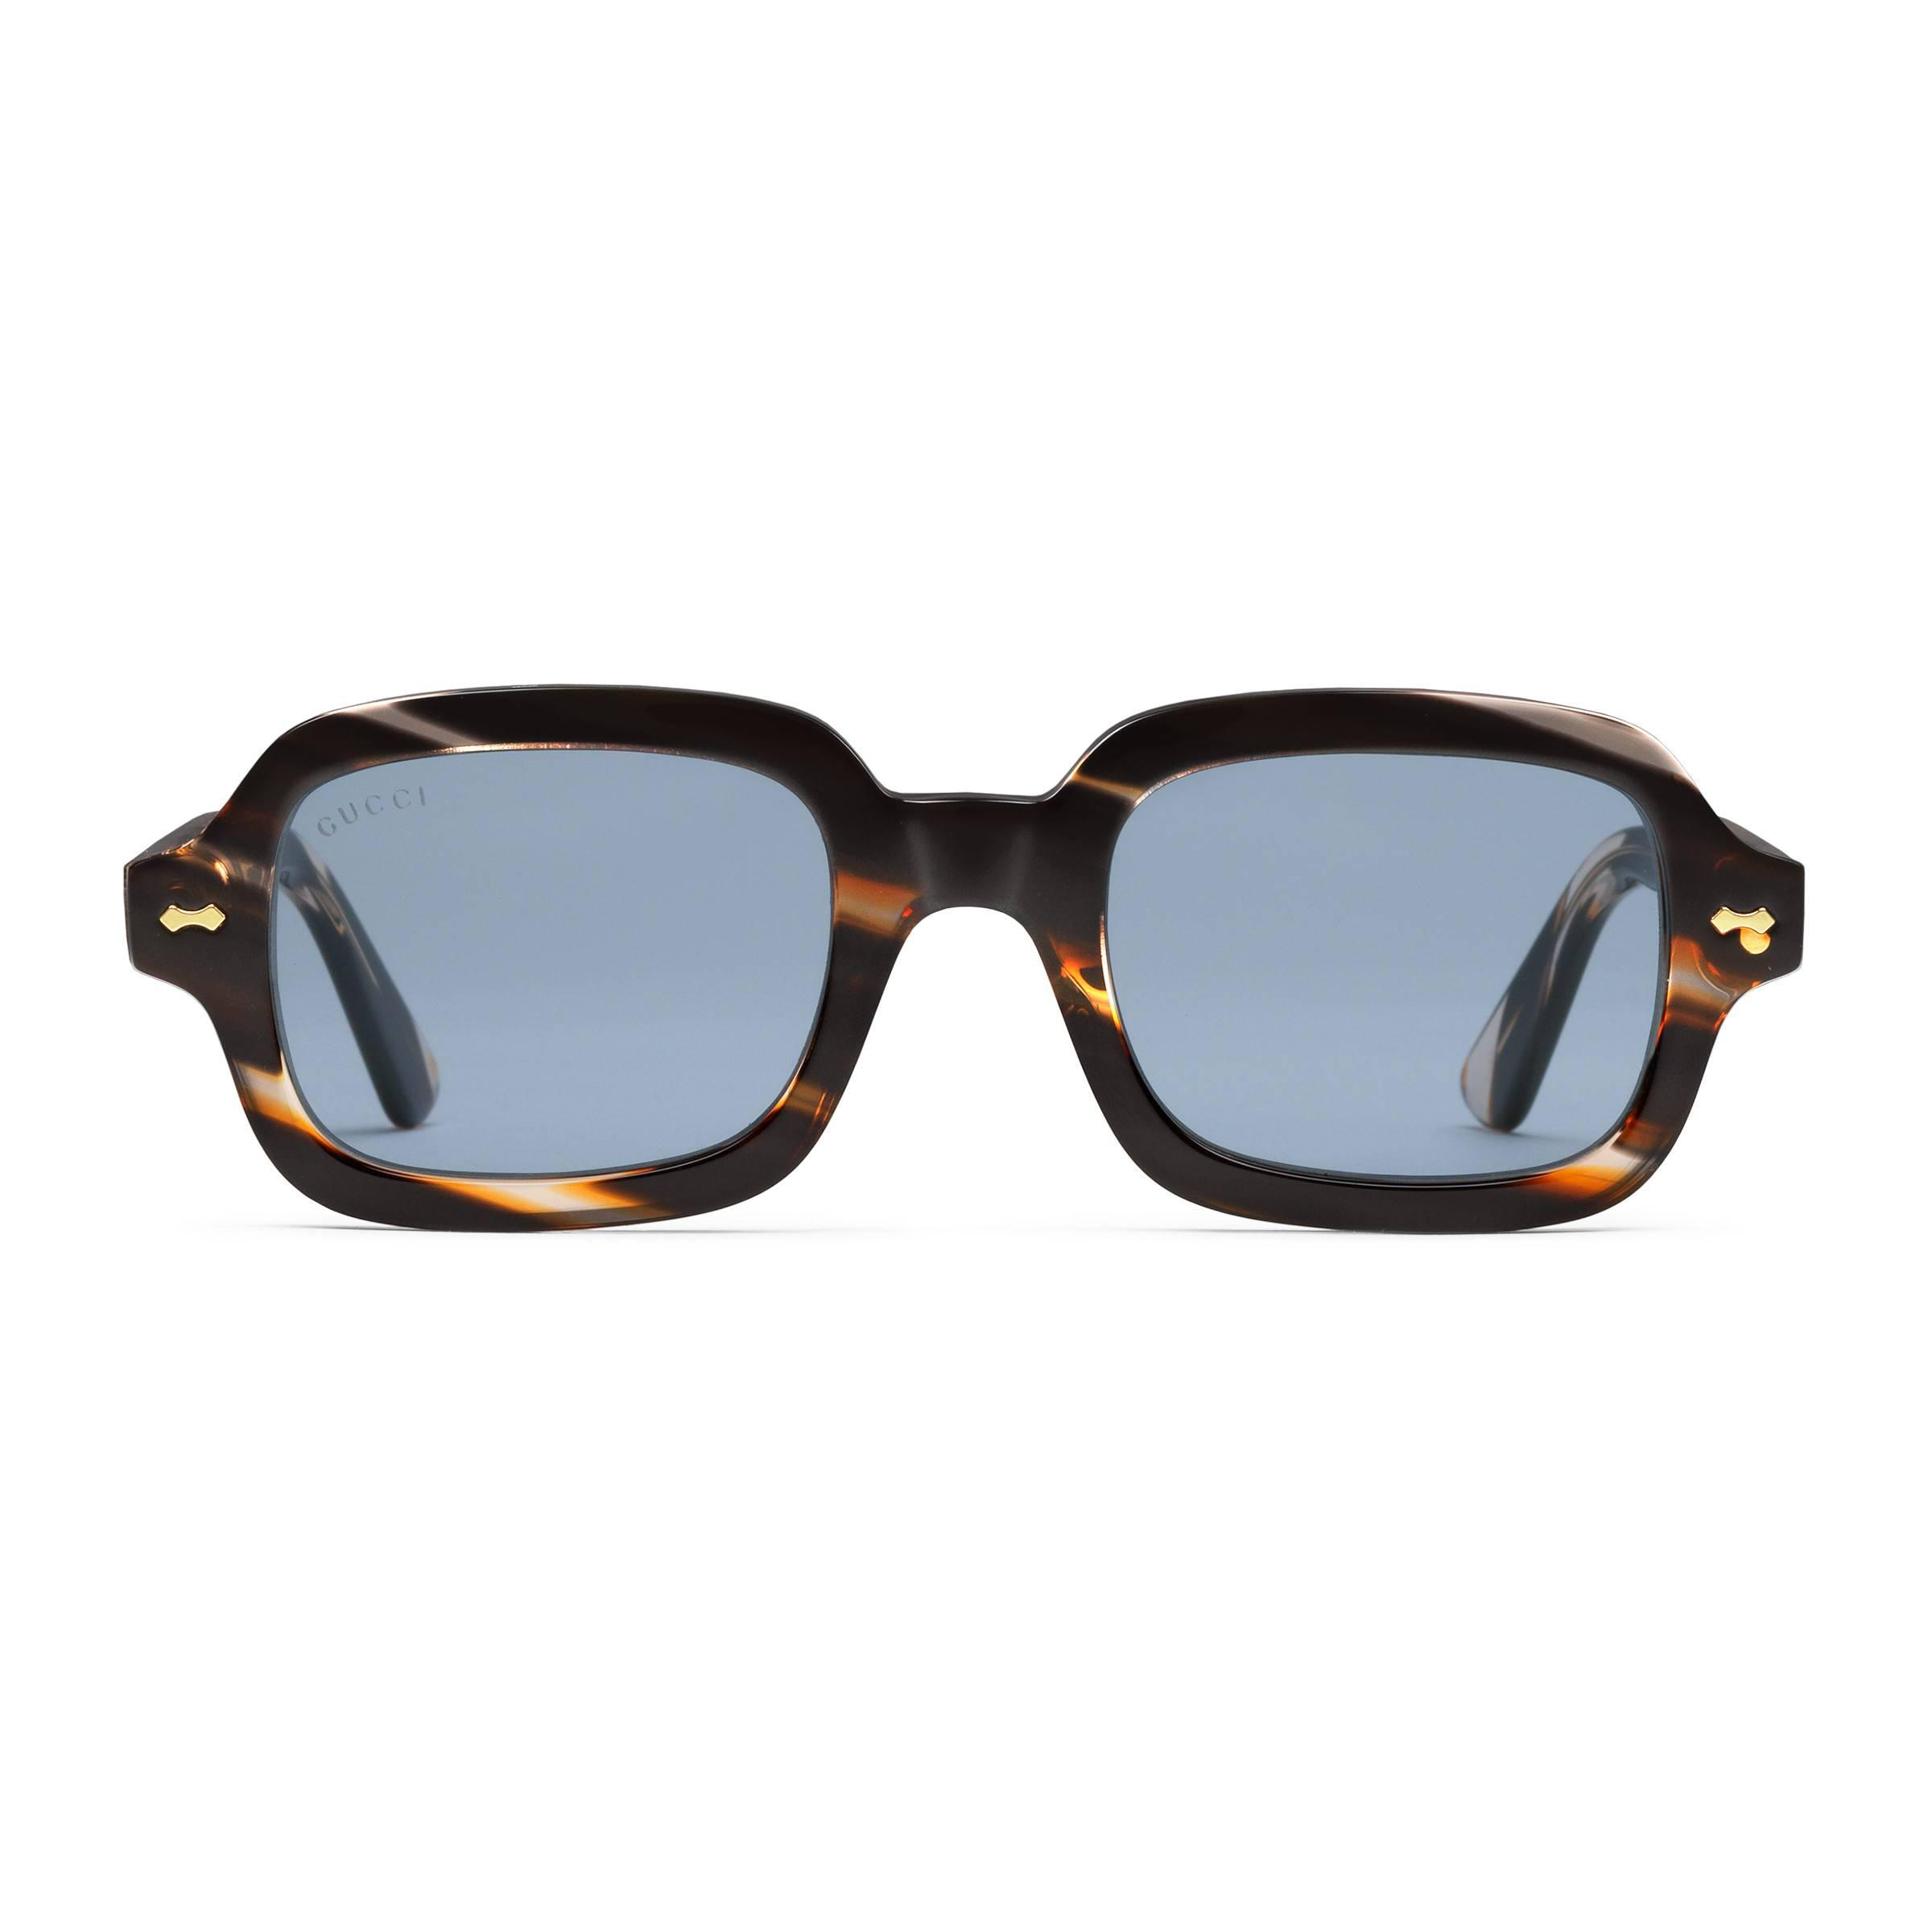 94ab30a42f3 Gucci Rectangular-frame Acetate Glasses for Men - Lyst